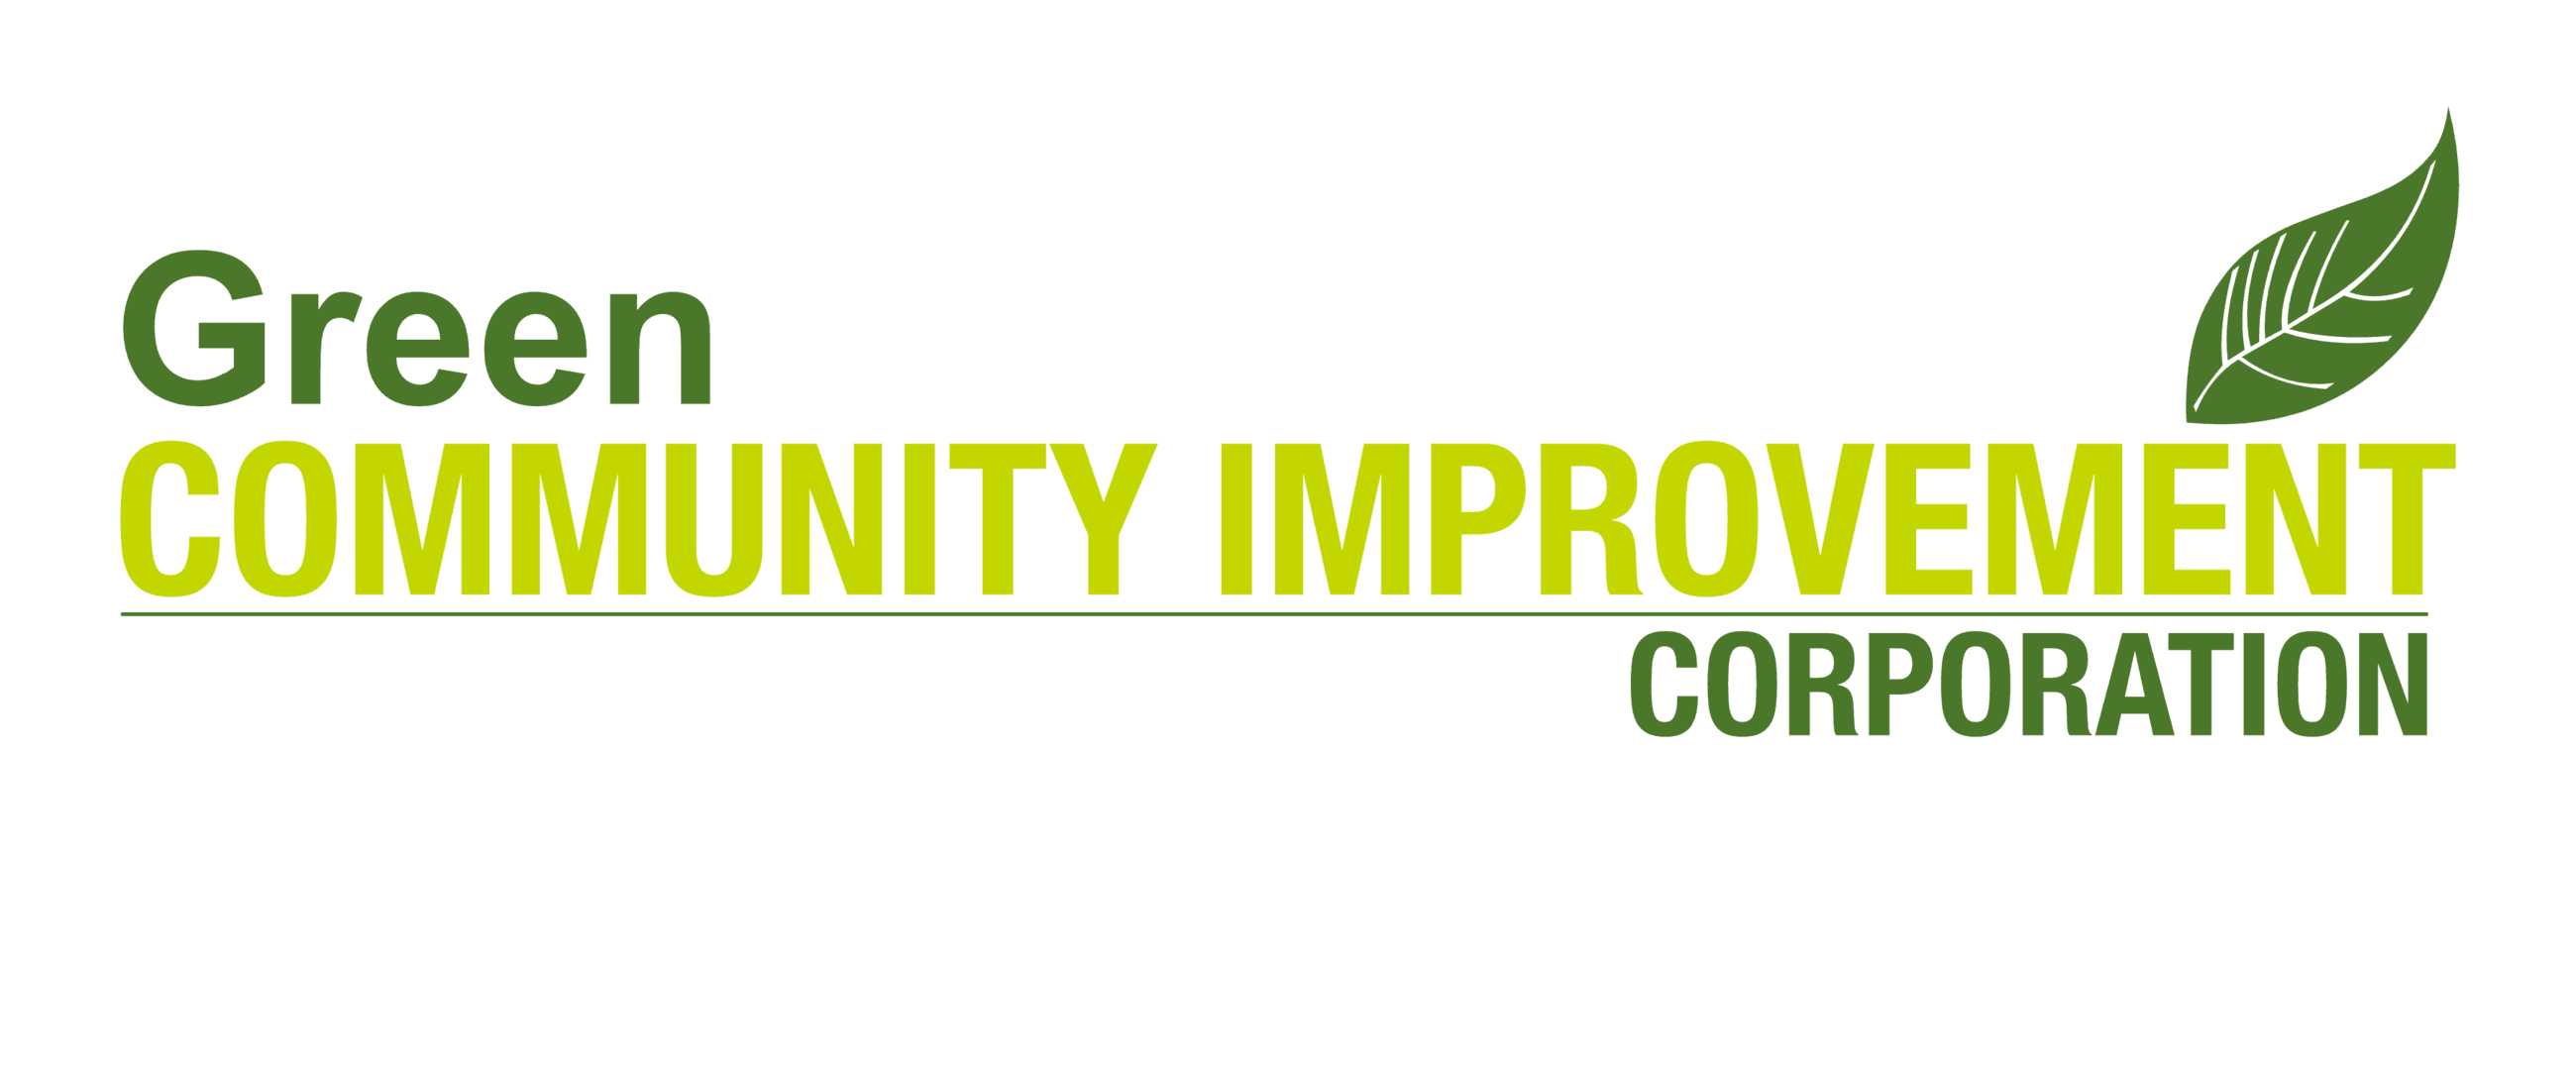 Community Improvement Corporation